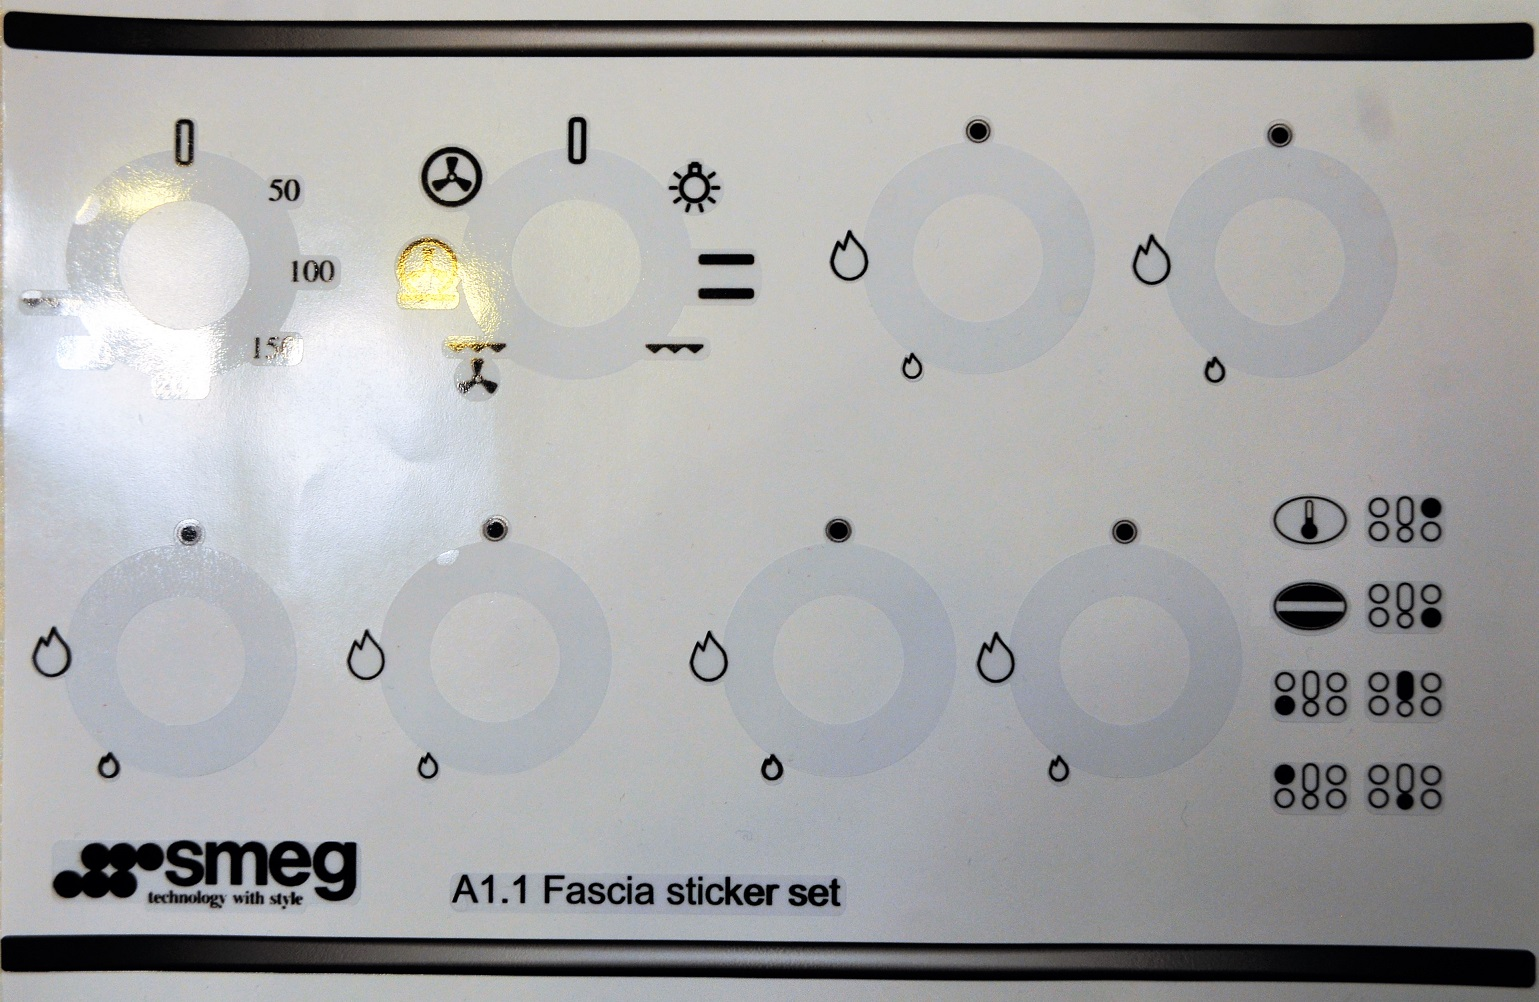 Smeg A1.1 Fascia panel decal sticker set, analogue clock.